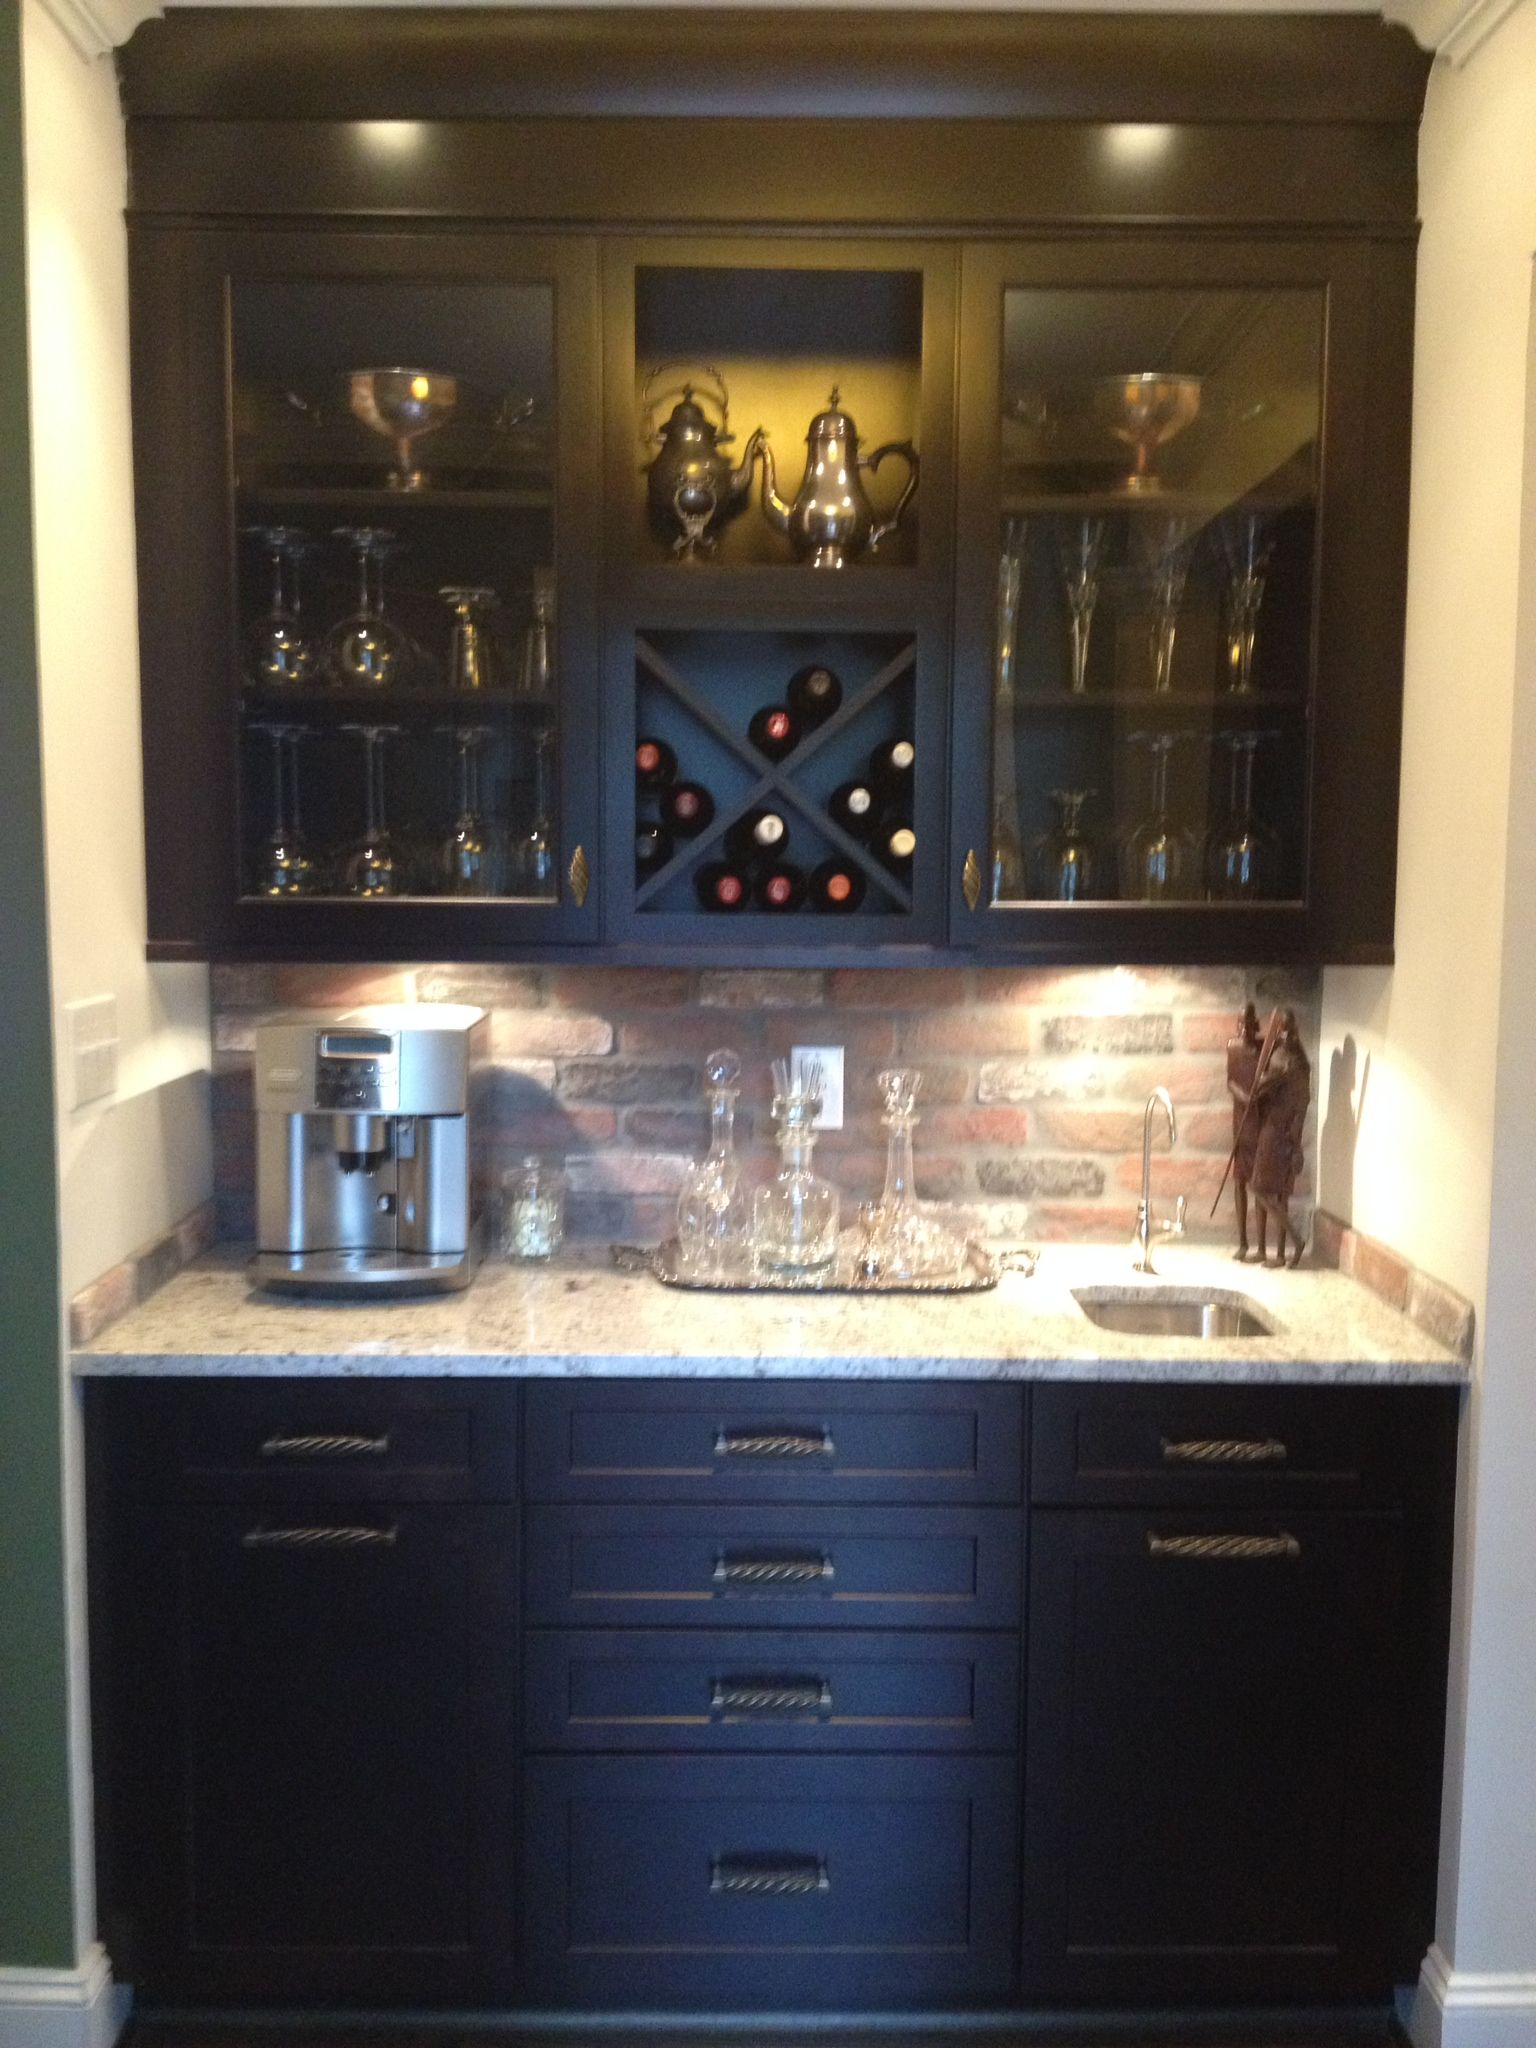 Pin by chemargrey on Tudor Revival Reno | Kitchen cabinets ...